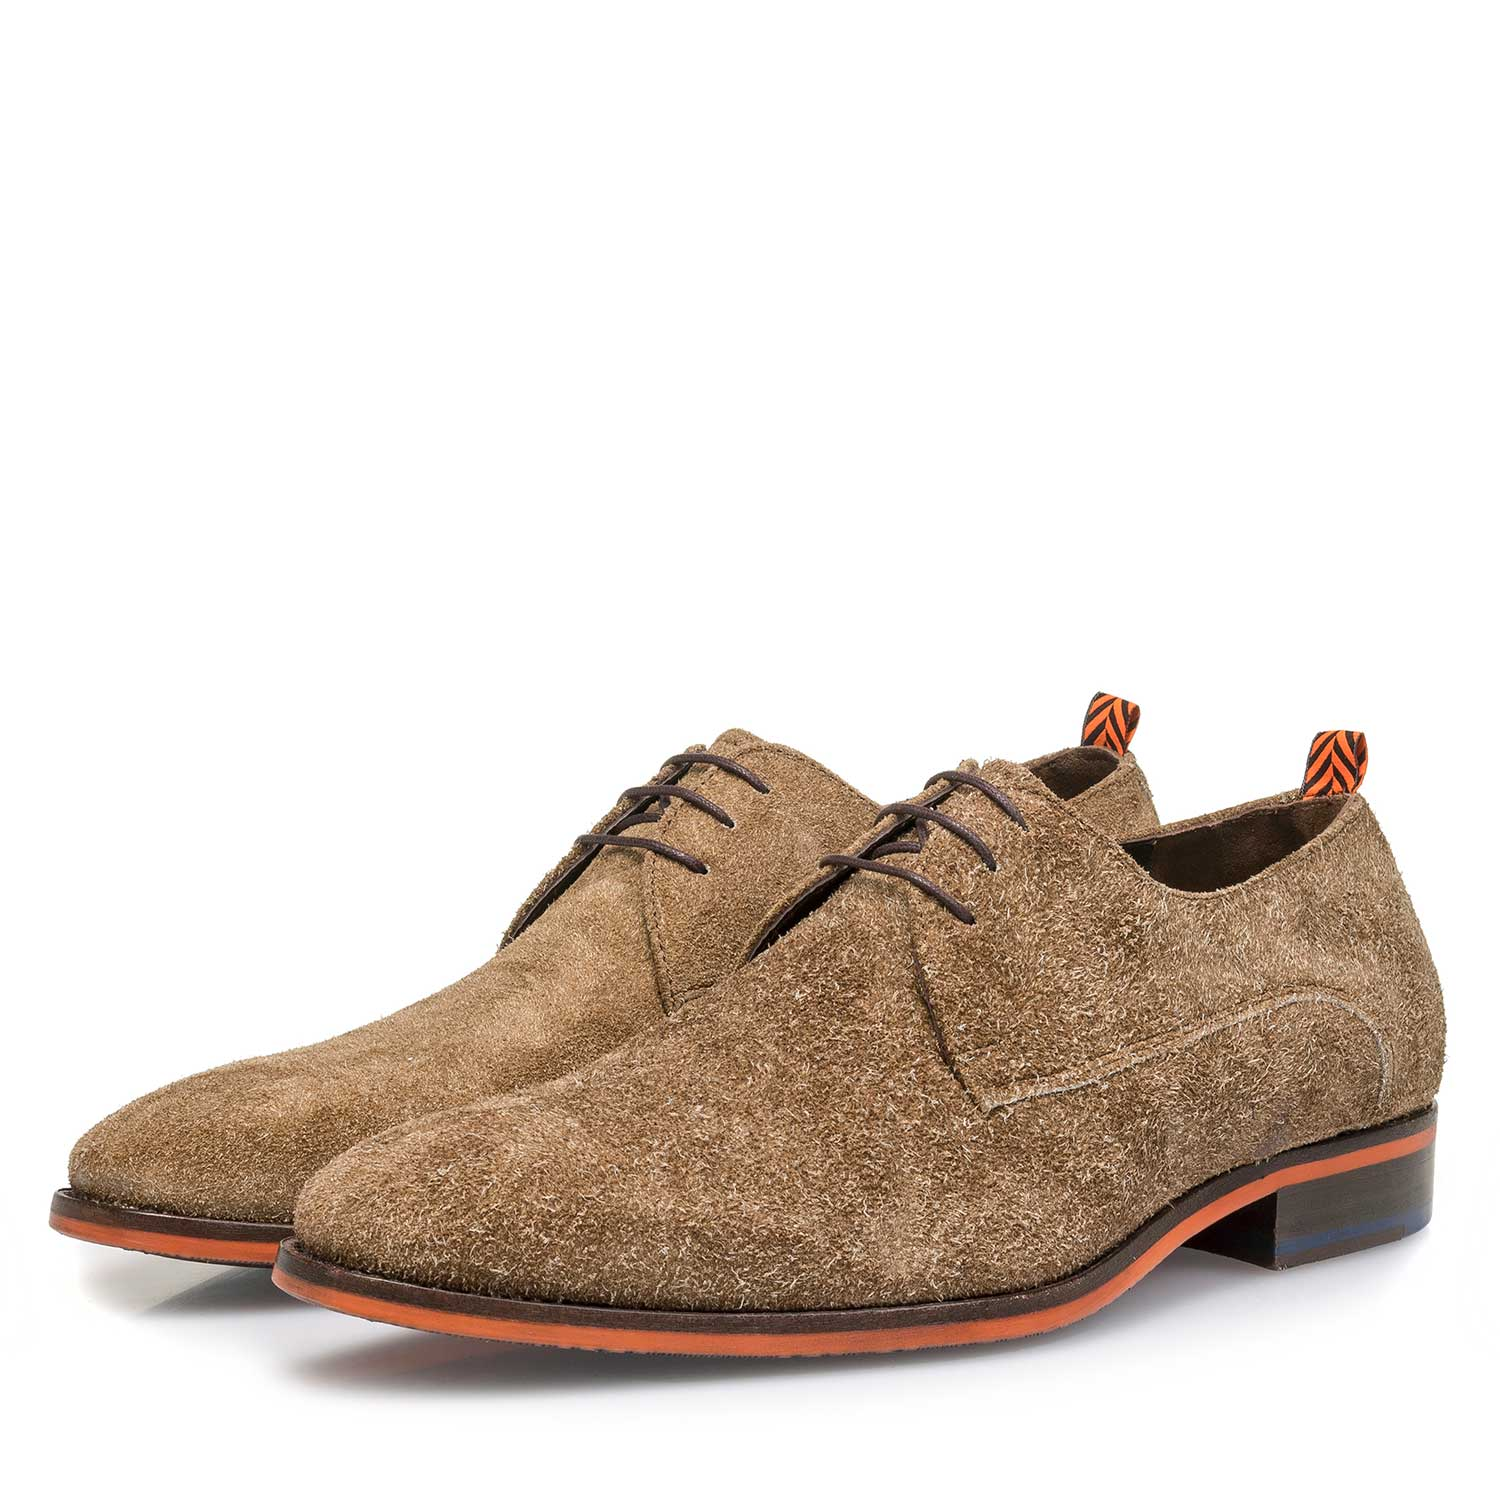 18092/03 - Brown buffed suede leather lace shoe